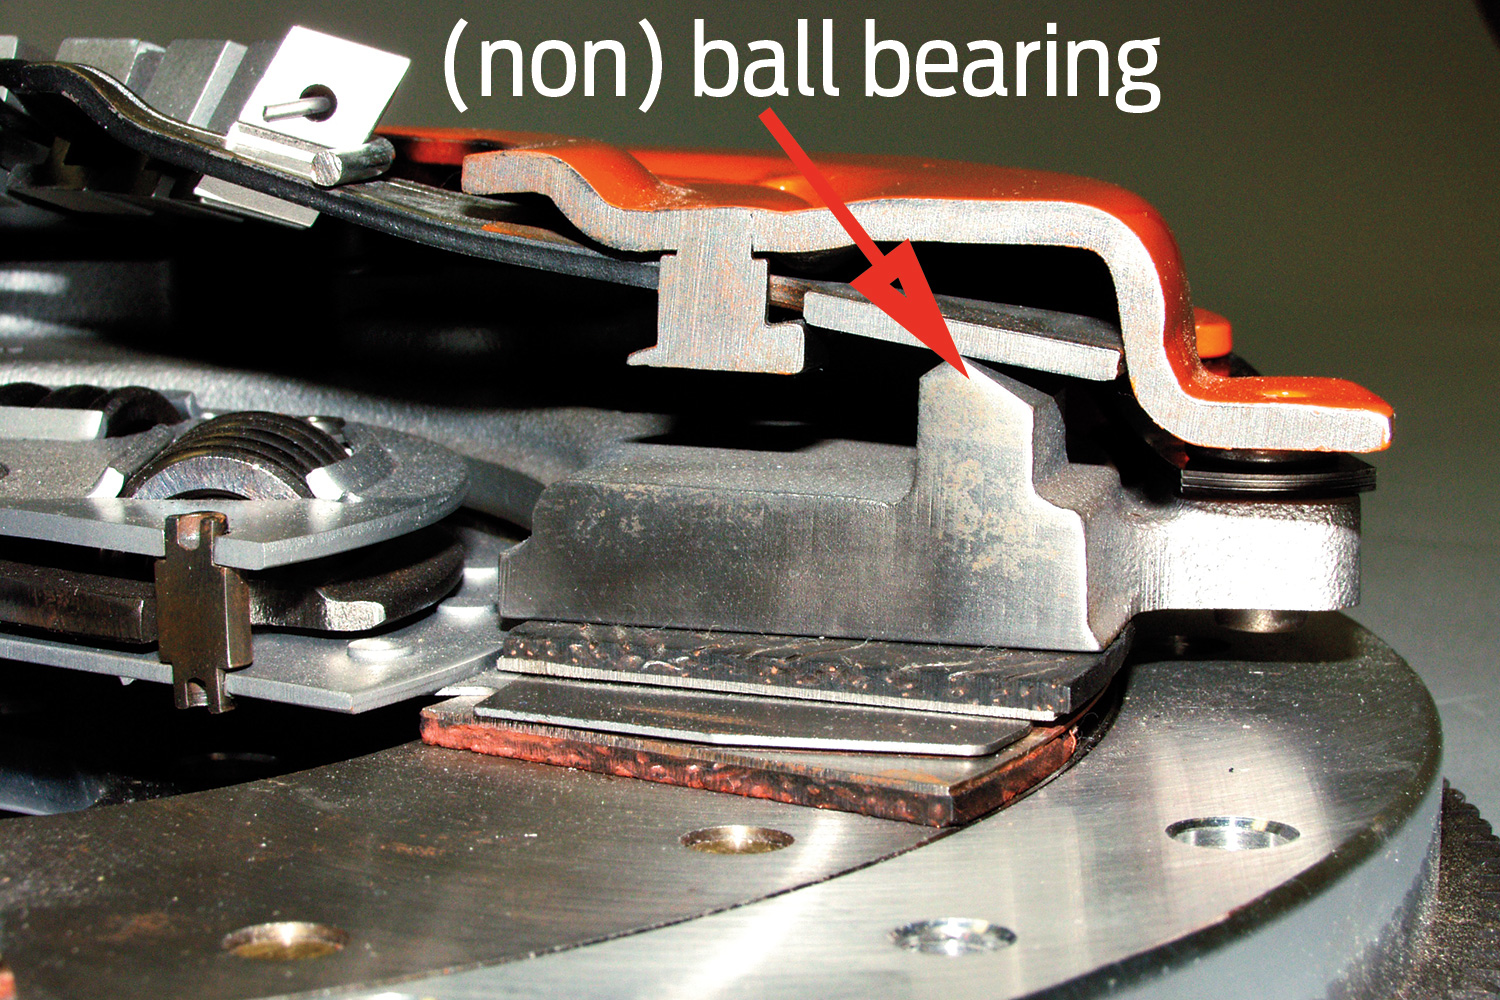 [14] Now we'll discuss pressure plate pivot points.